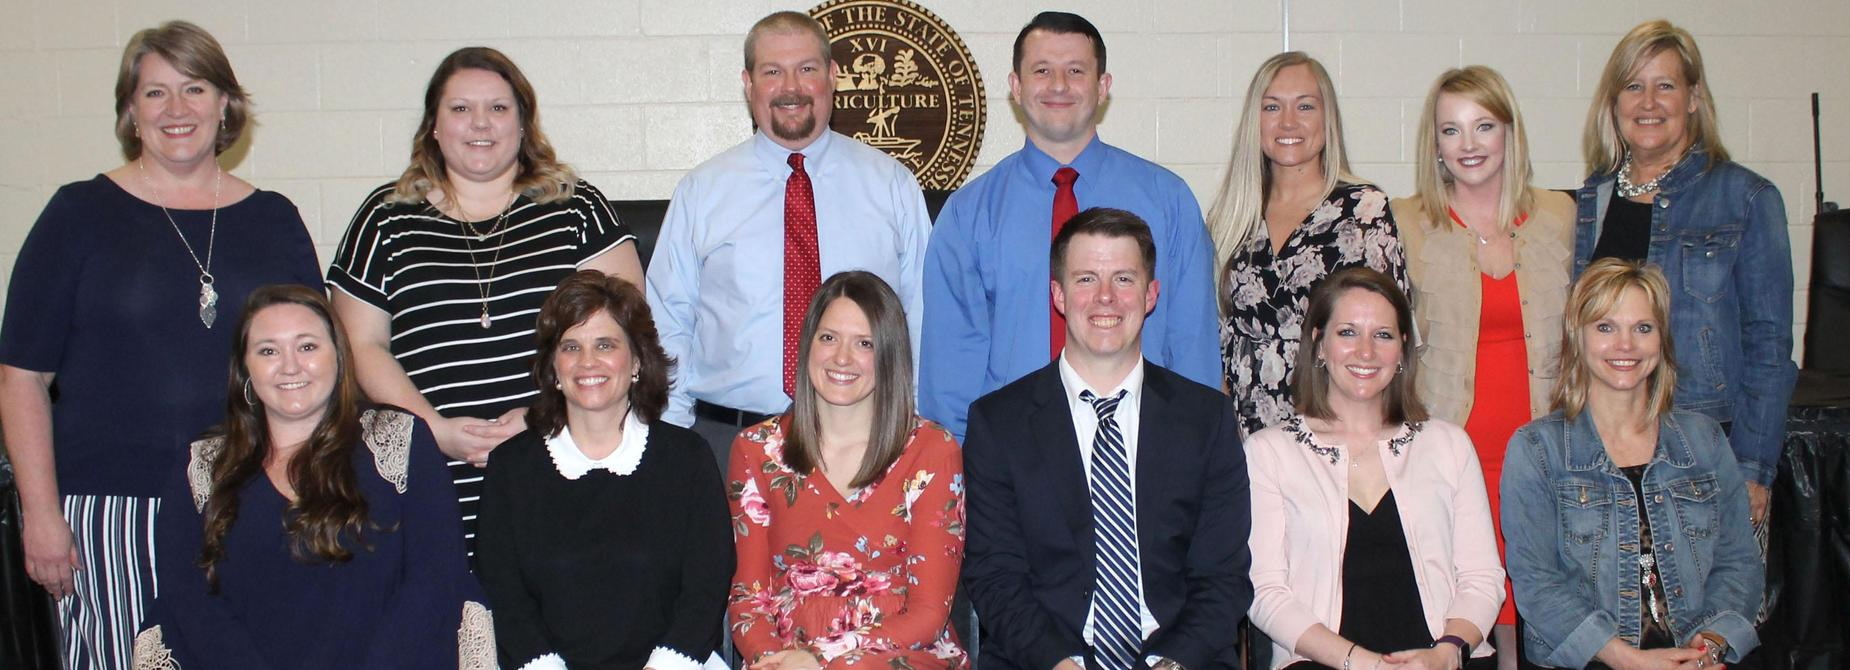 The 2017-2018 Cheatham County Teachers of the Year are pictured with Director of Schools Dr. Cathy Beck.